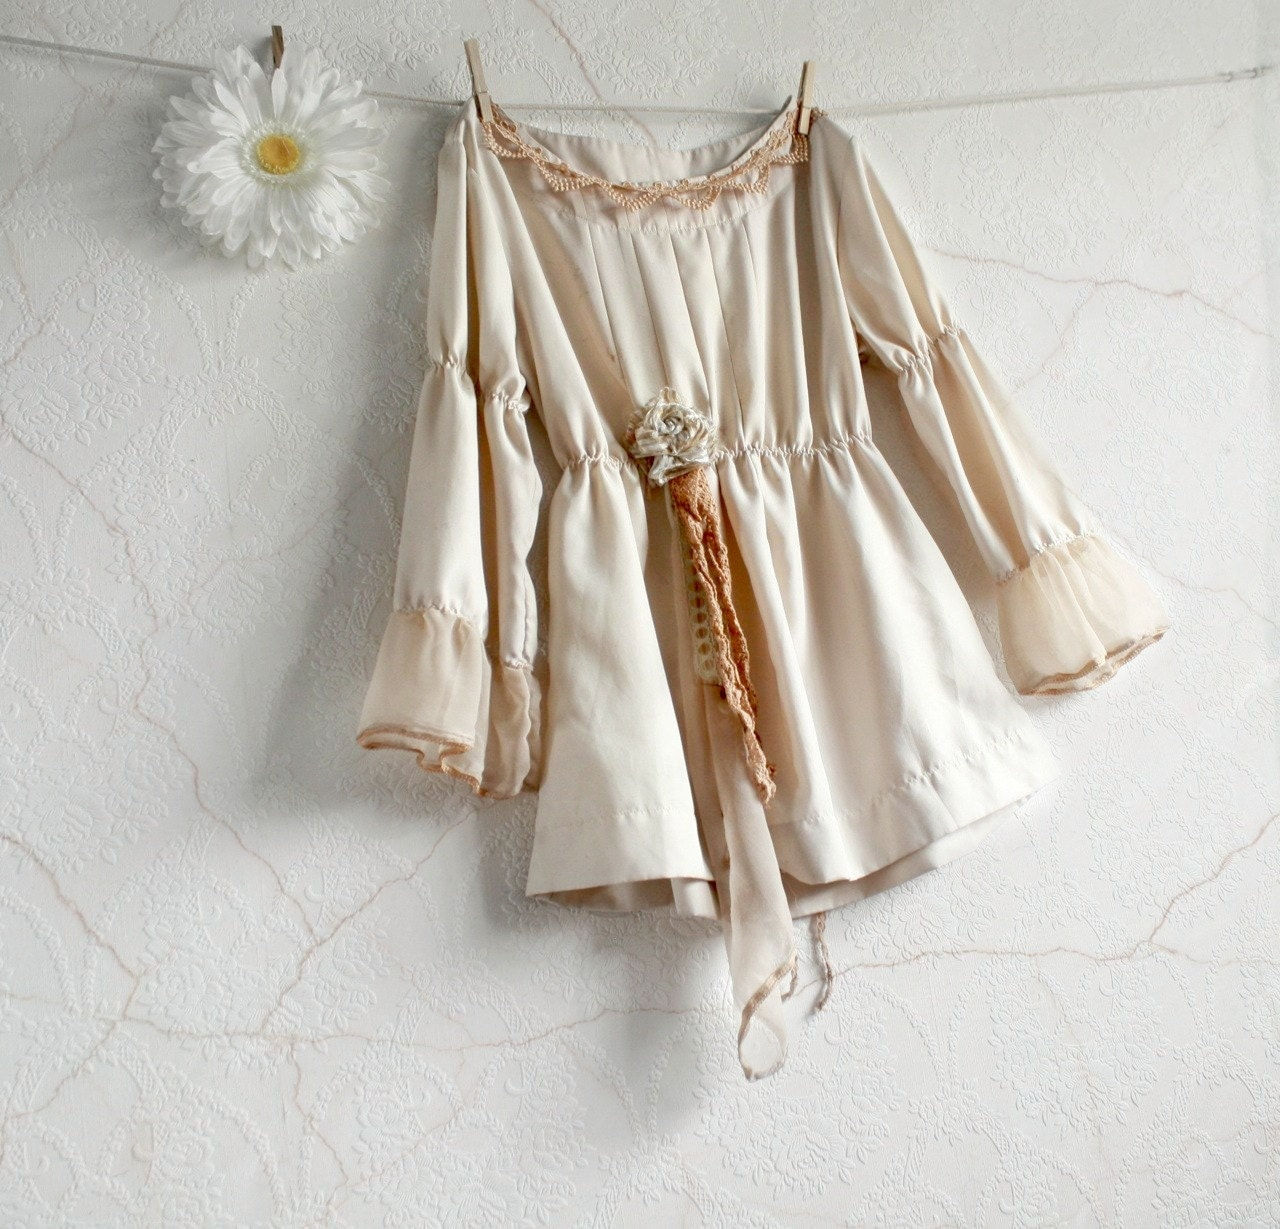 Cream blouse shabby chic clothing women 39 s shirt eco for Lampe style shabby chic